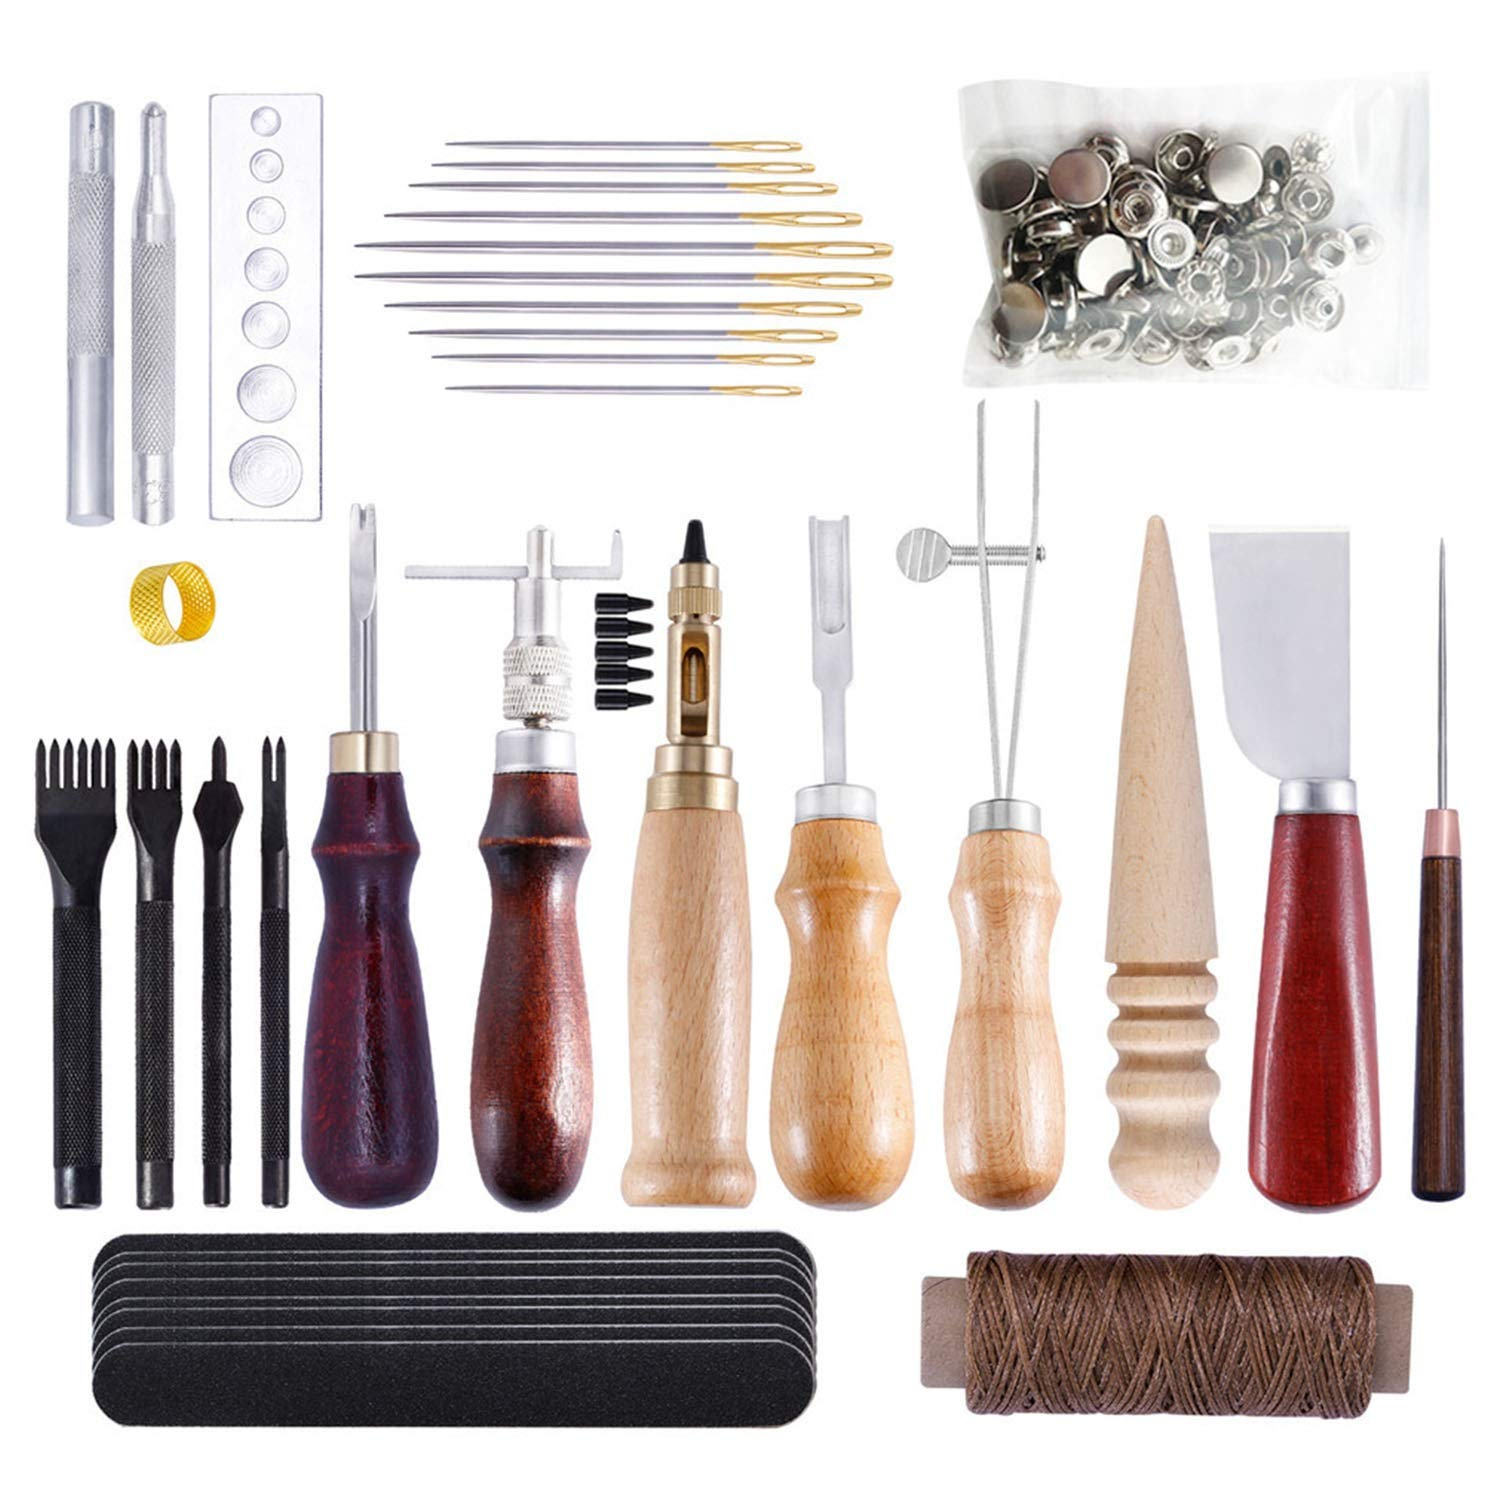 Yingxinguang Leather DIY Hand Sewing Set, Handmade Leather Goods, Leather Craft, Practical Hand Tools by Yingxinguang